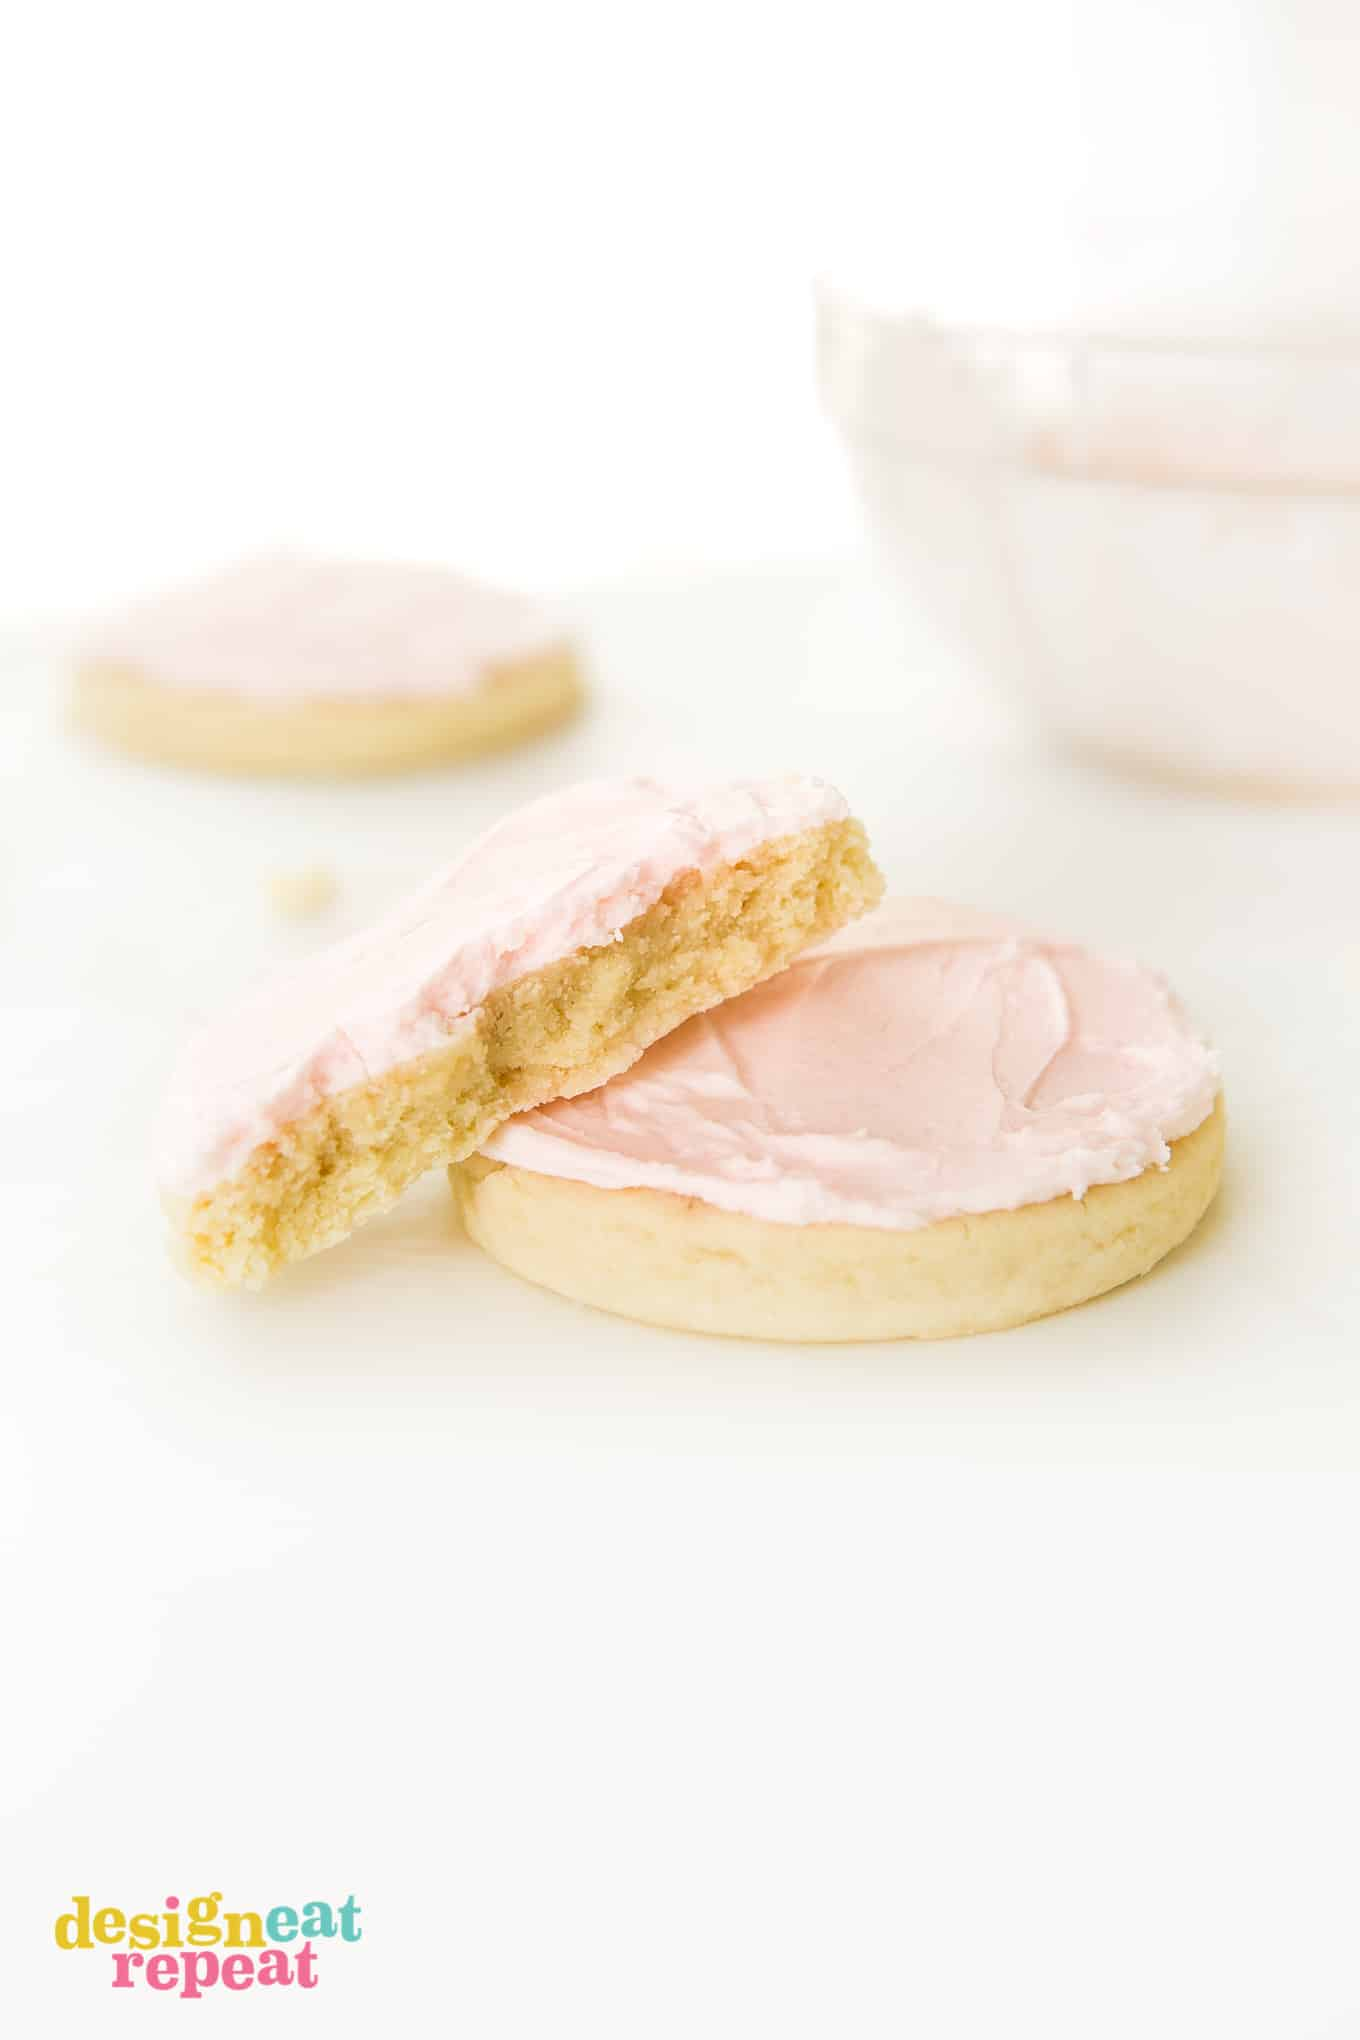 Replicate the famous Swig sugar cookie recipe by making a batch of these soft, thicksugar cookies - topped with delicious buttercream frosting! Perfect for Mother's Day, Valentine's Day, birthdays, or just as a go-to giftable treat.